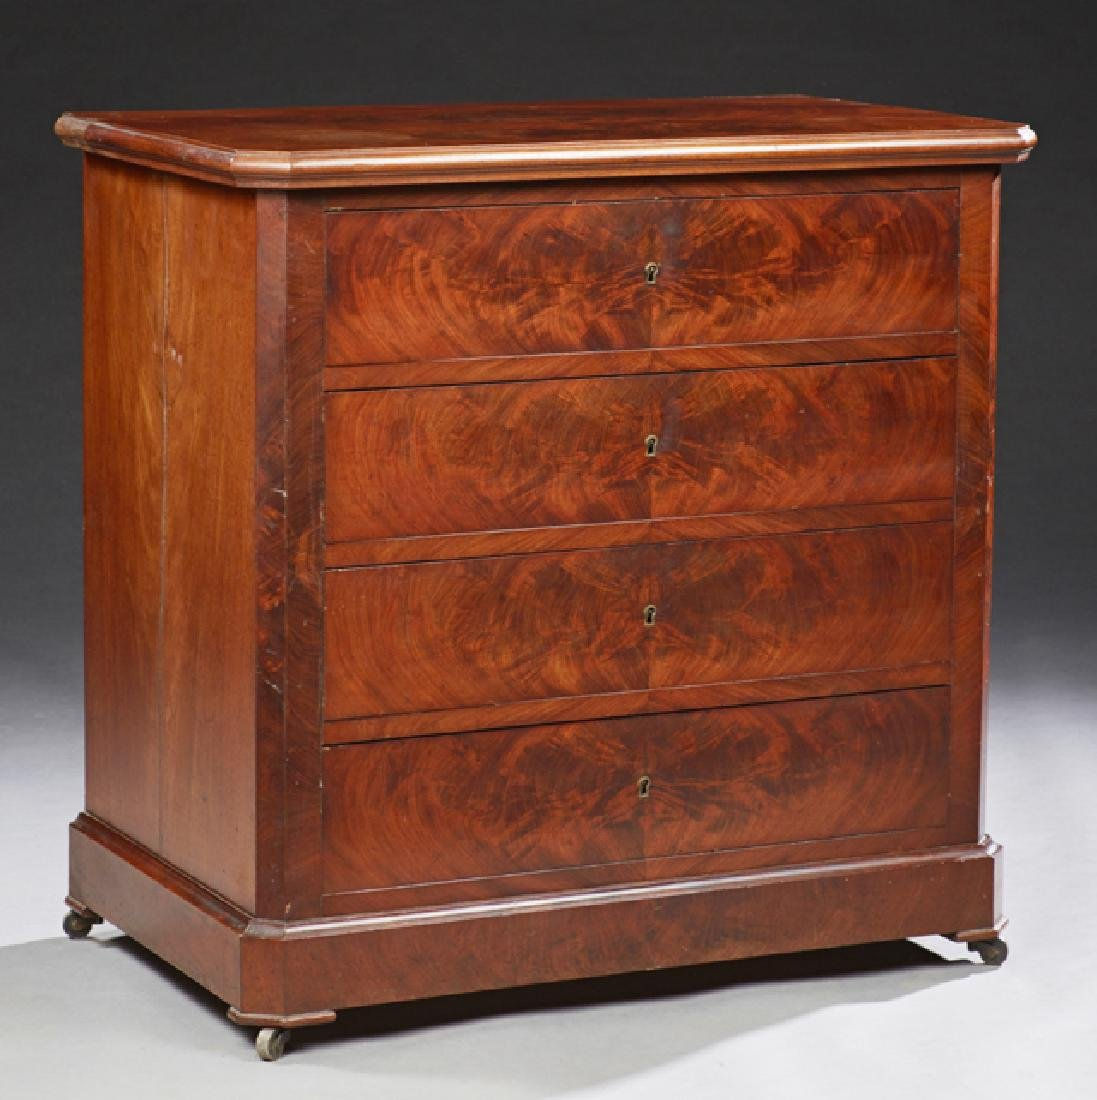 Diminutive French Carved Mahogany Commode, c. 1870, the